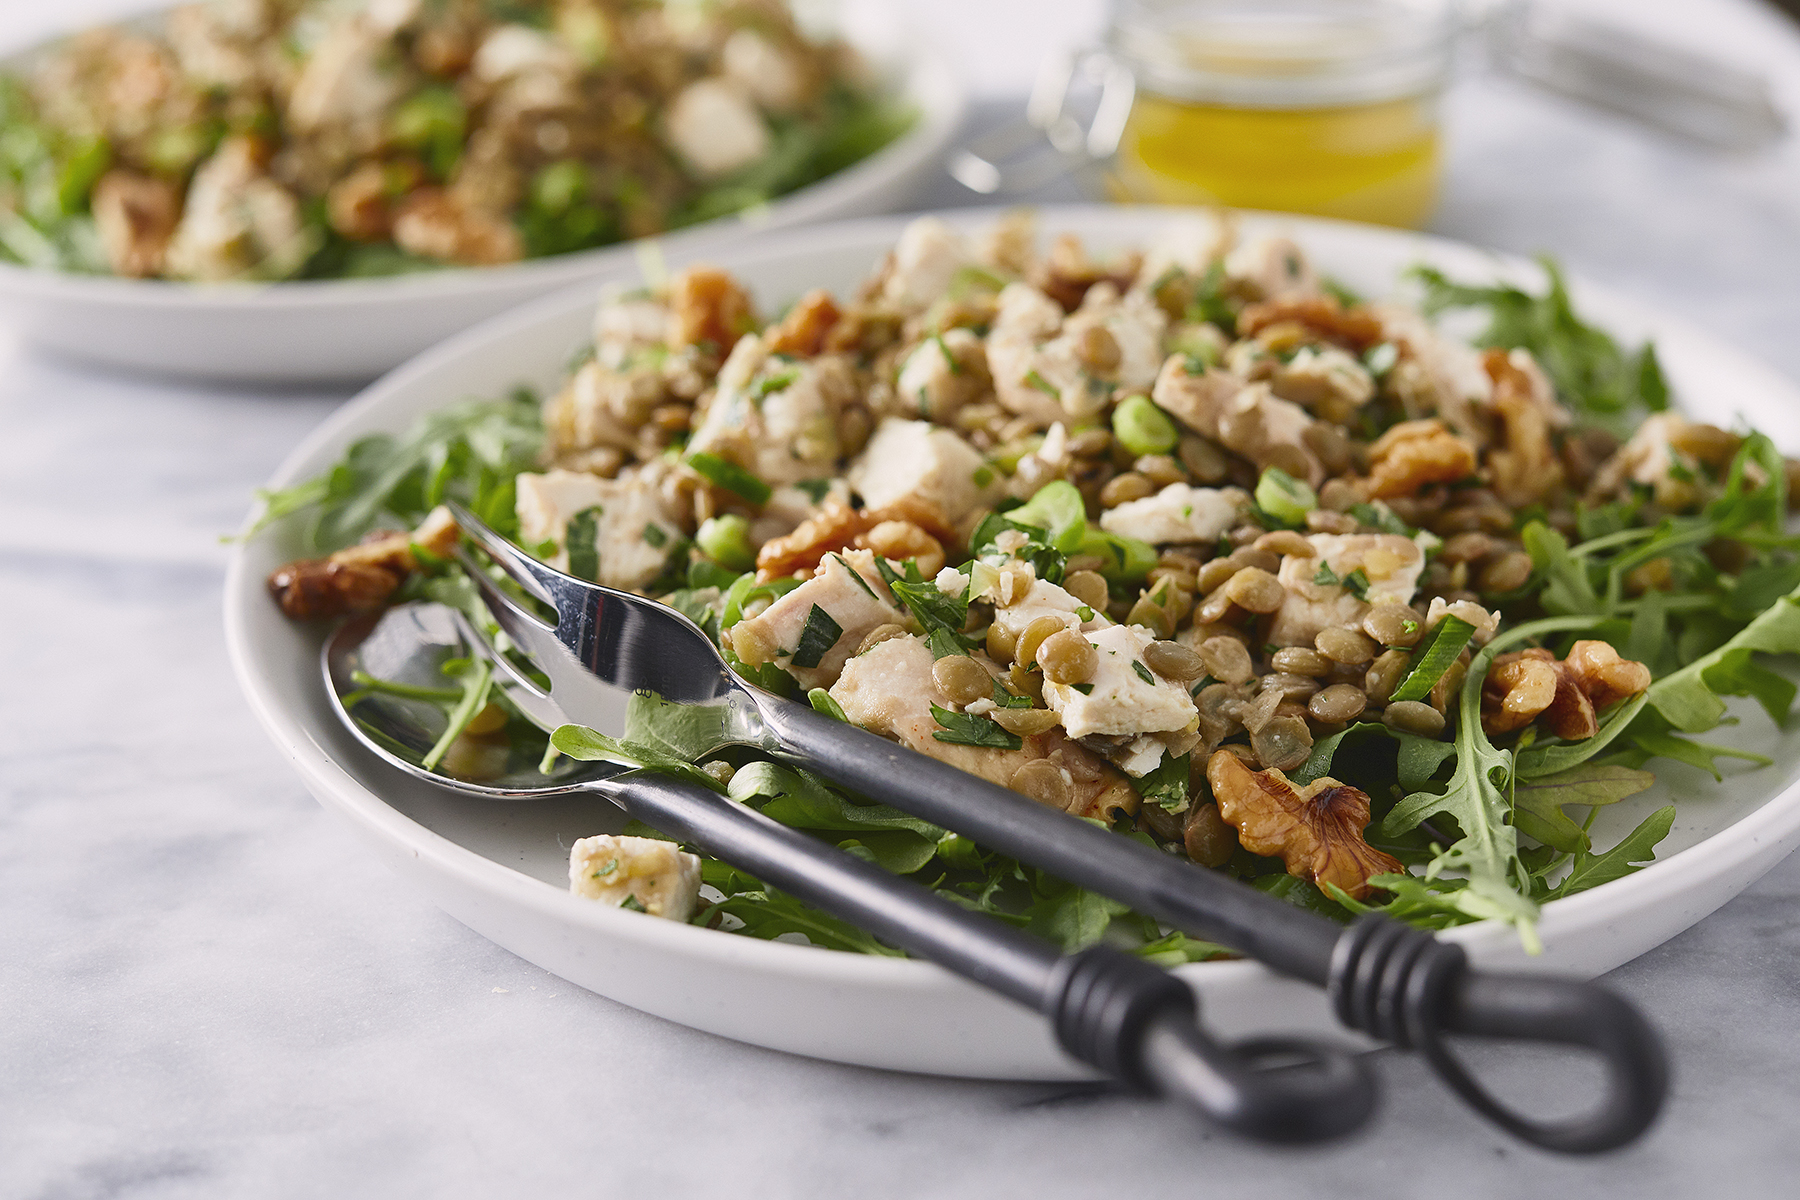 CHICKEN & LENTIL SALAD